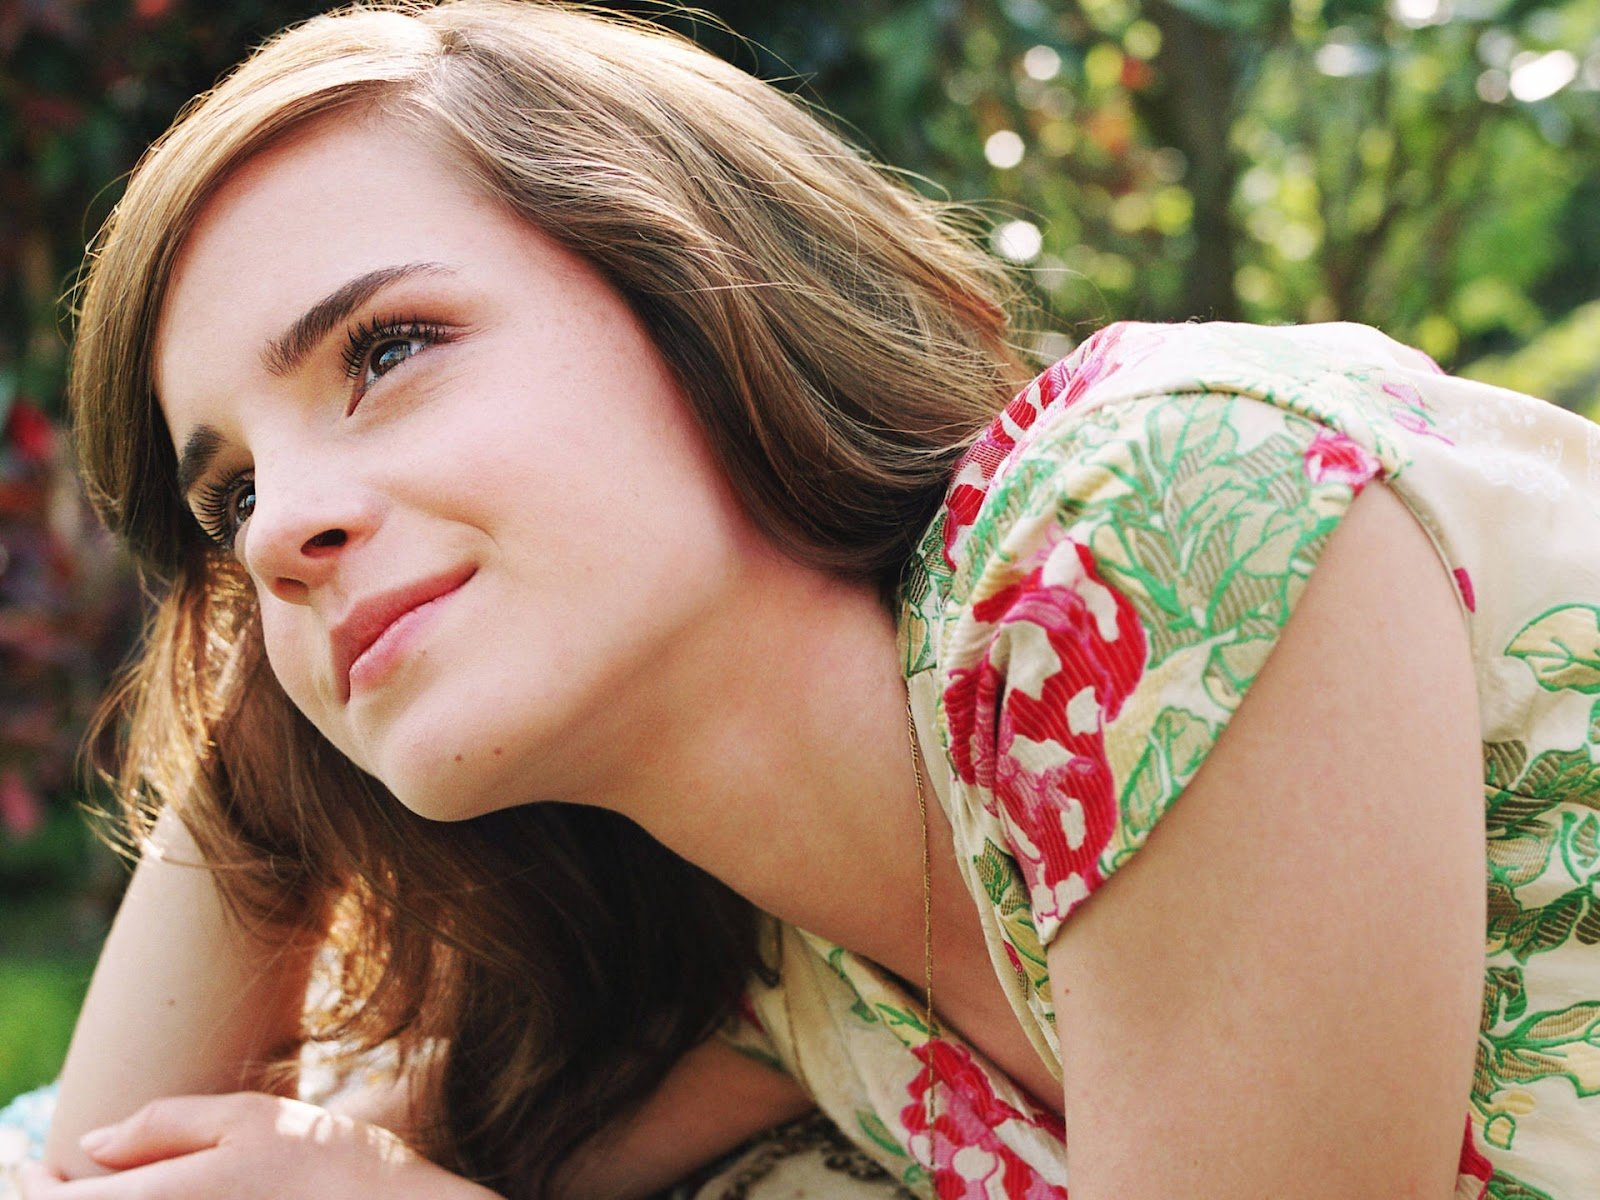 emma watson high definition images are available in hd quality 1600x1200